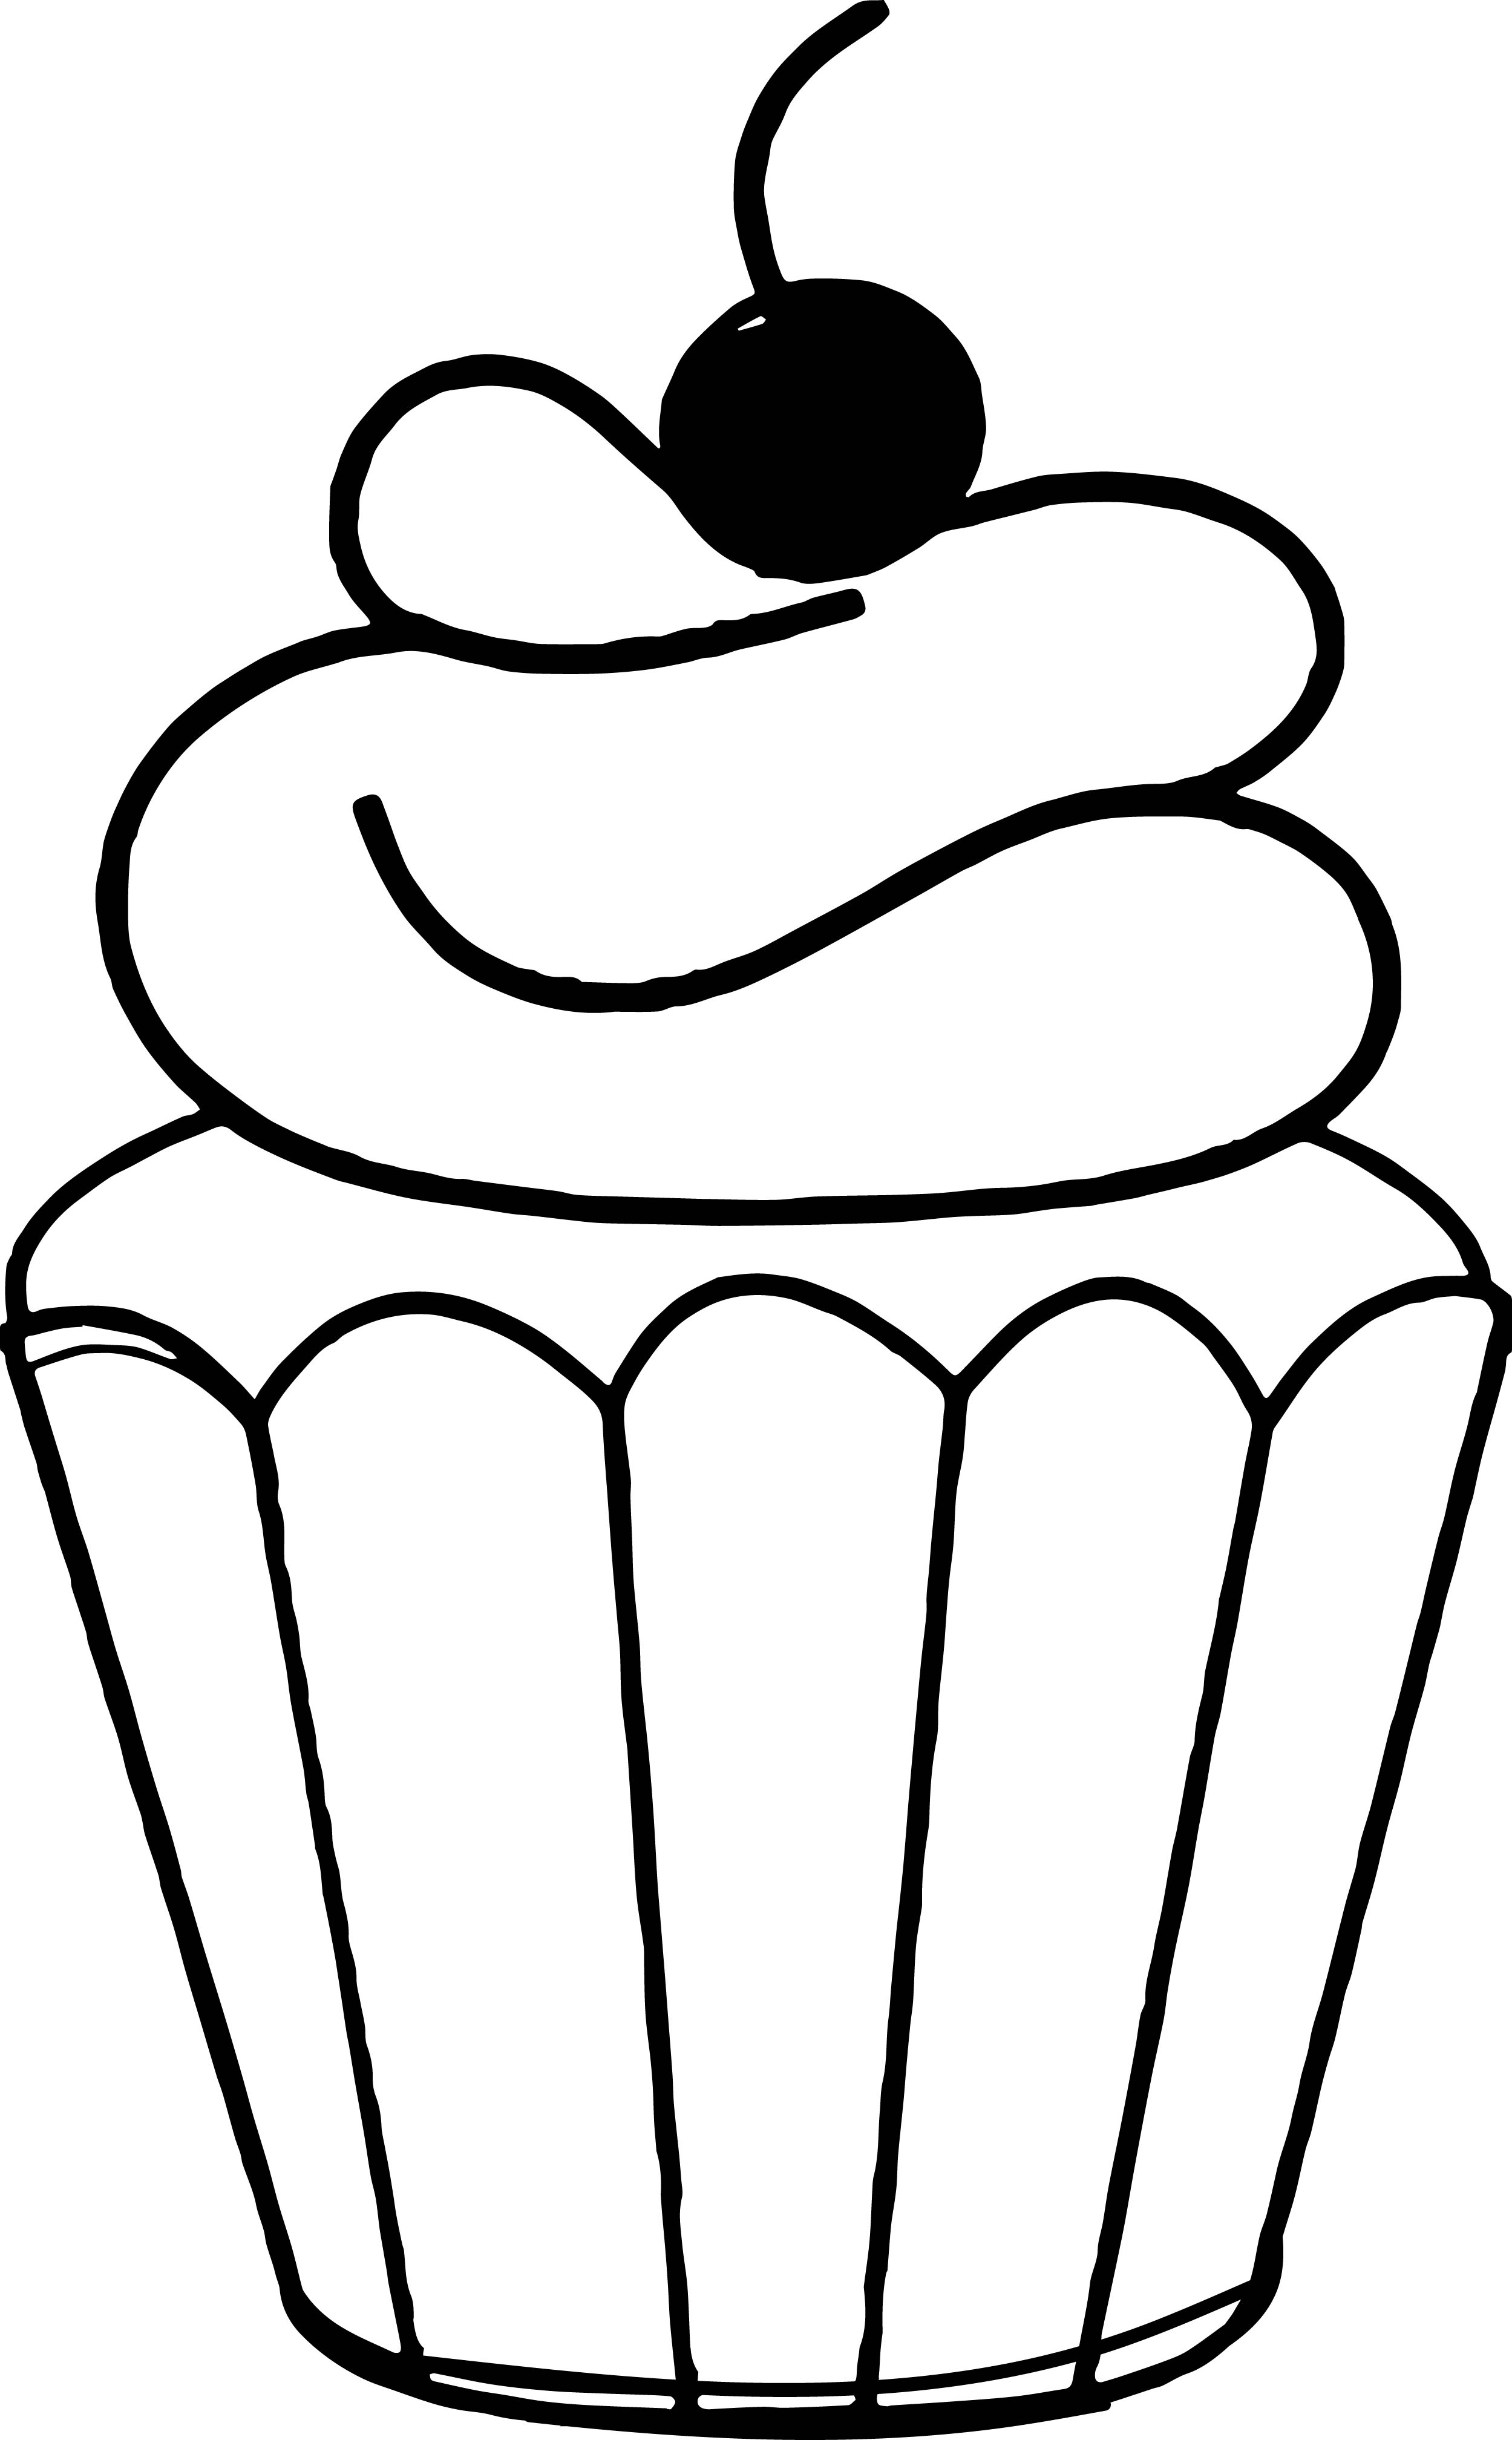 Clipart Cake Coloring : Cupcake Clipart White - ClipArt Best